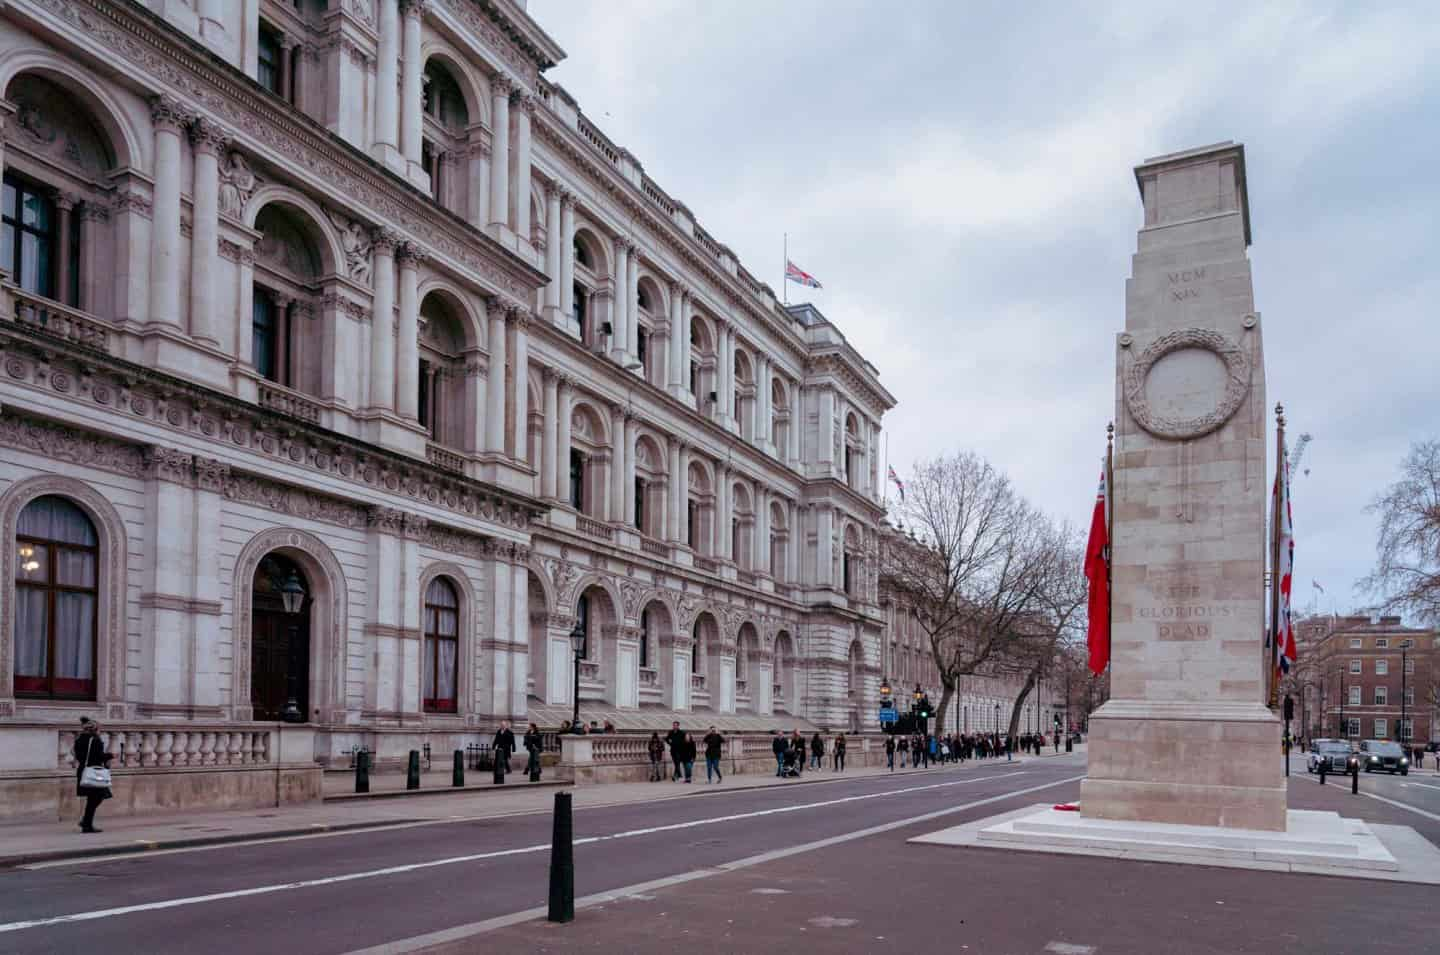 A photo of the cenotaph war memorial on one of London's most famous streets; Whitehall.